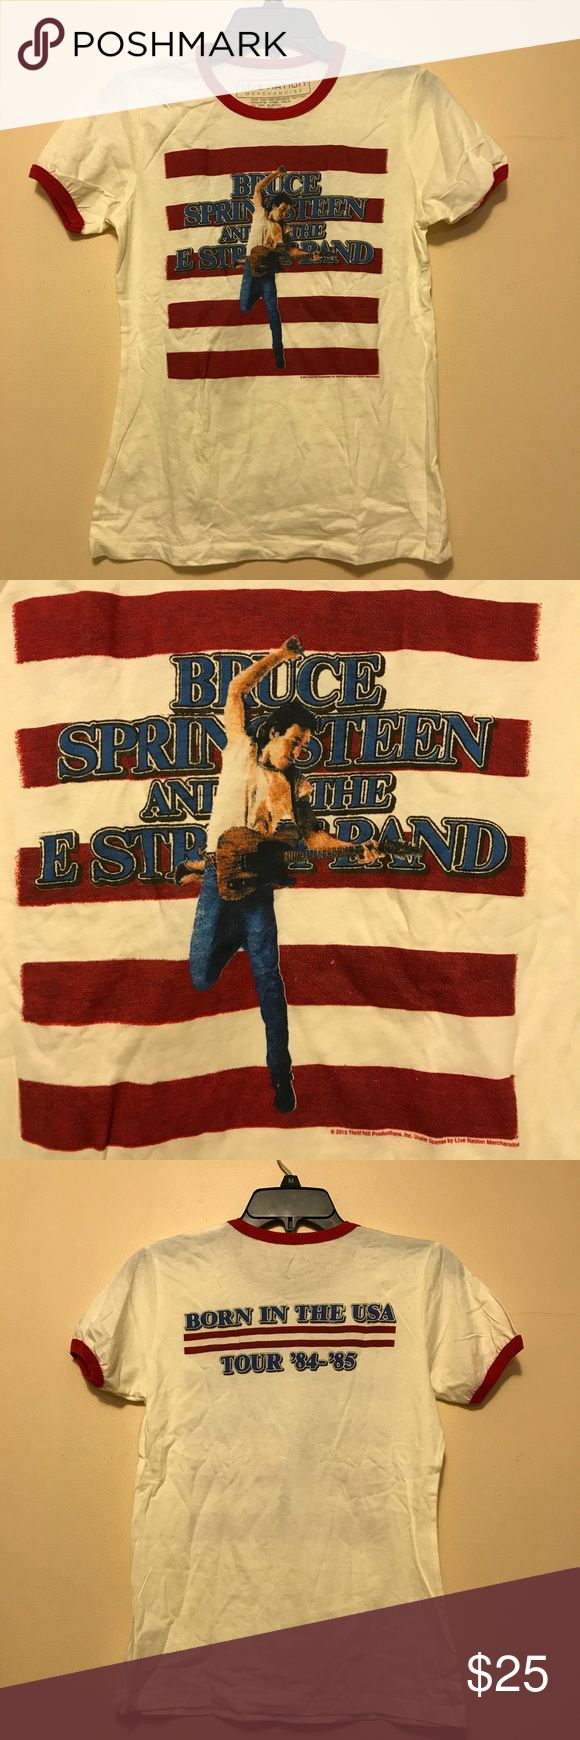 Bruce Springsteen tour shirt This Bruce Springsteen born in the USA tour shirt fits perfectly. Lined with red, it pictures bride Springsteen in front of a red striped background. The back of the shirt says the name of the tour and the year live nation merchandise Tops Tees - Short Sleeve